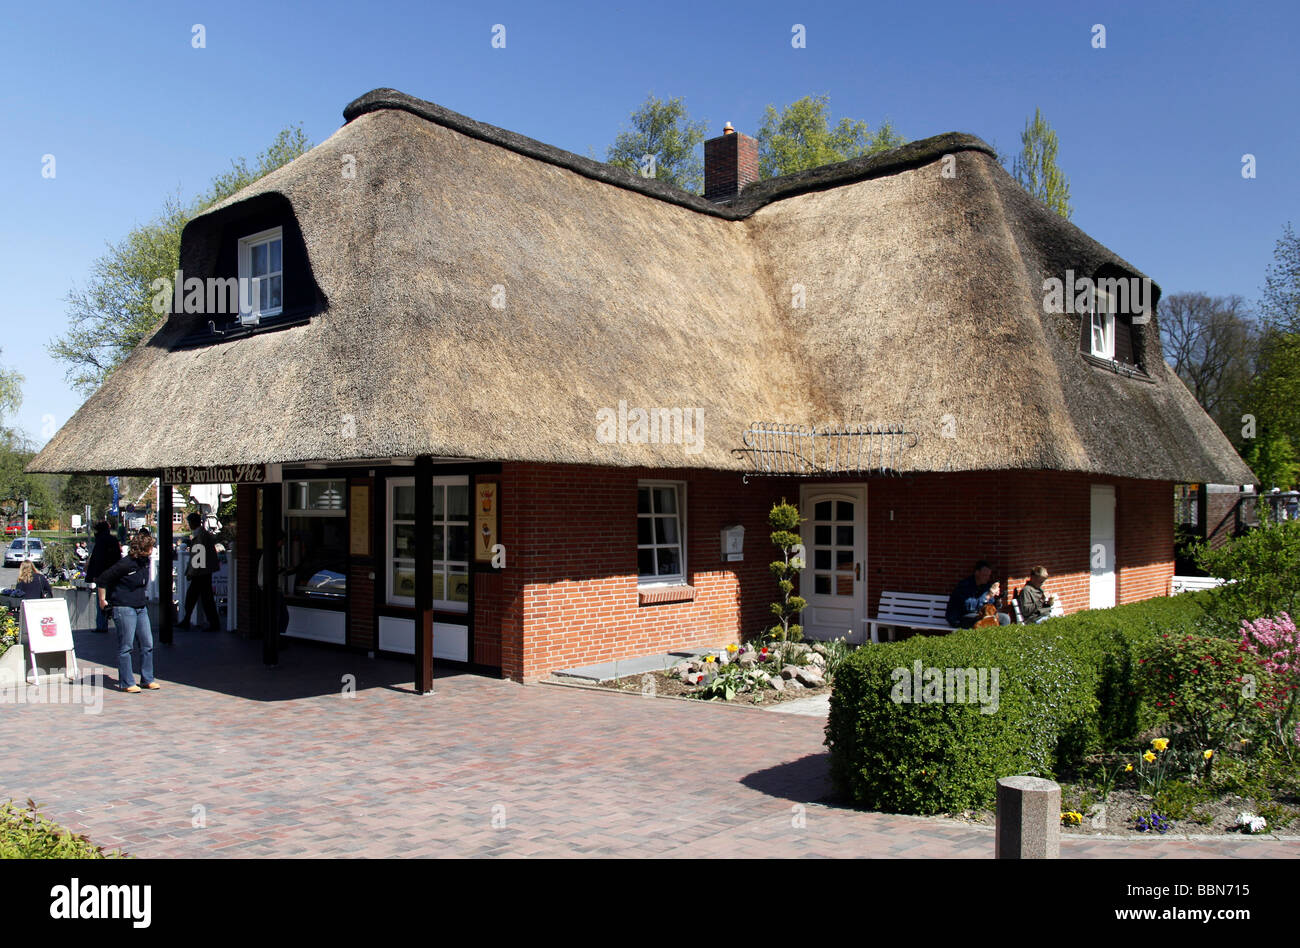 north german thatched roof house ratzeburg schleswig holstein stock photo royalty free image. Black Bedroom Furniture Sets. Home Design Ideas